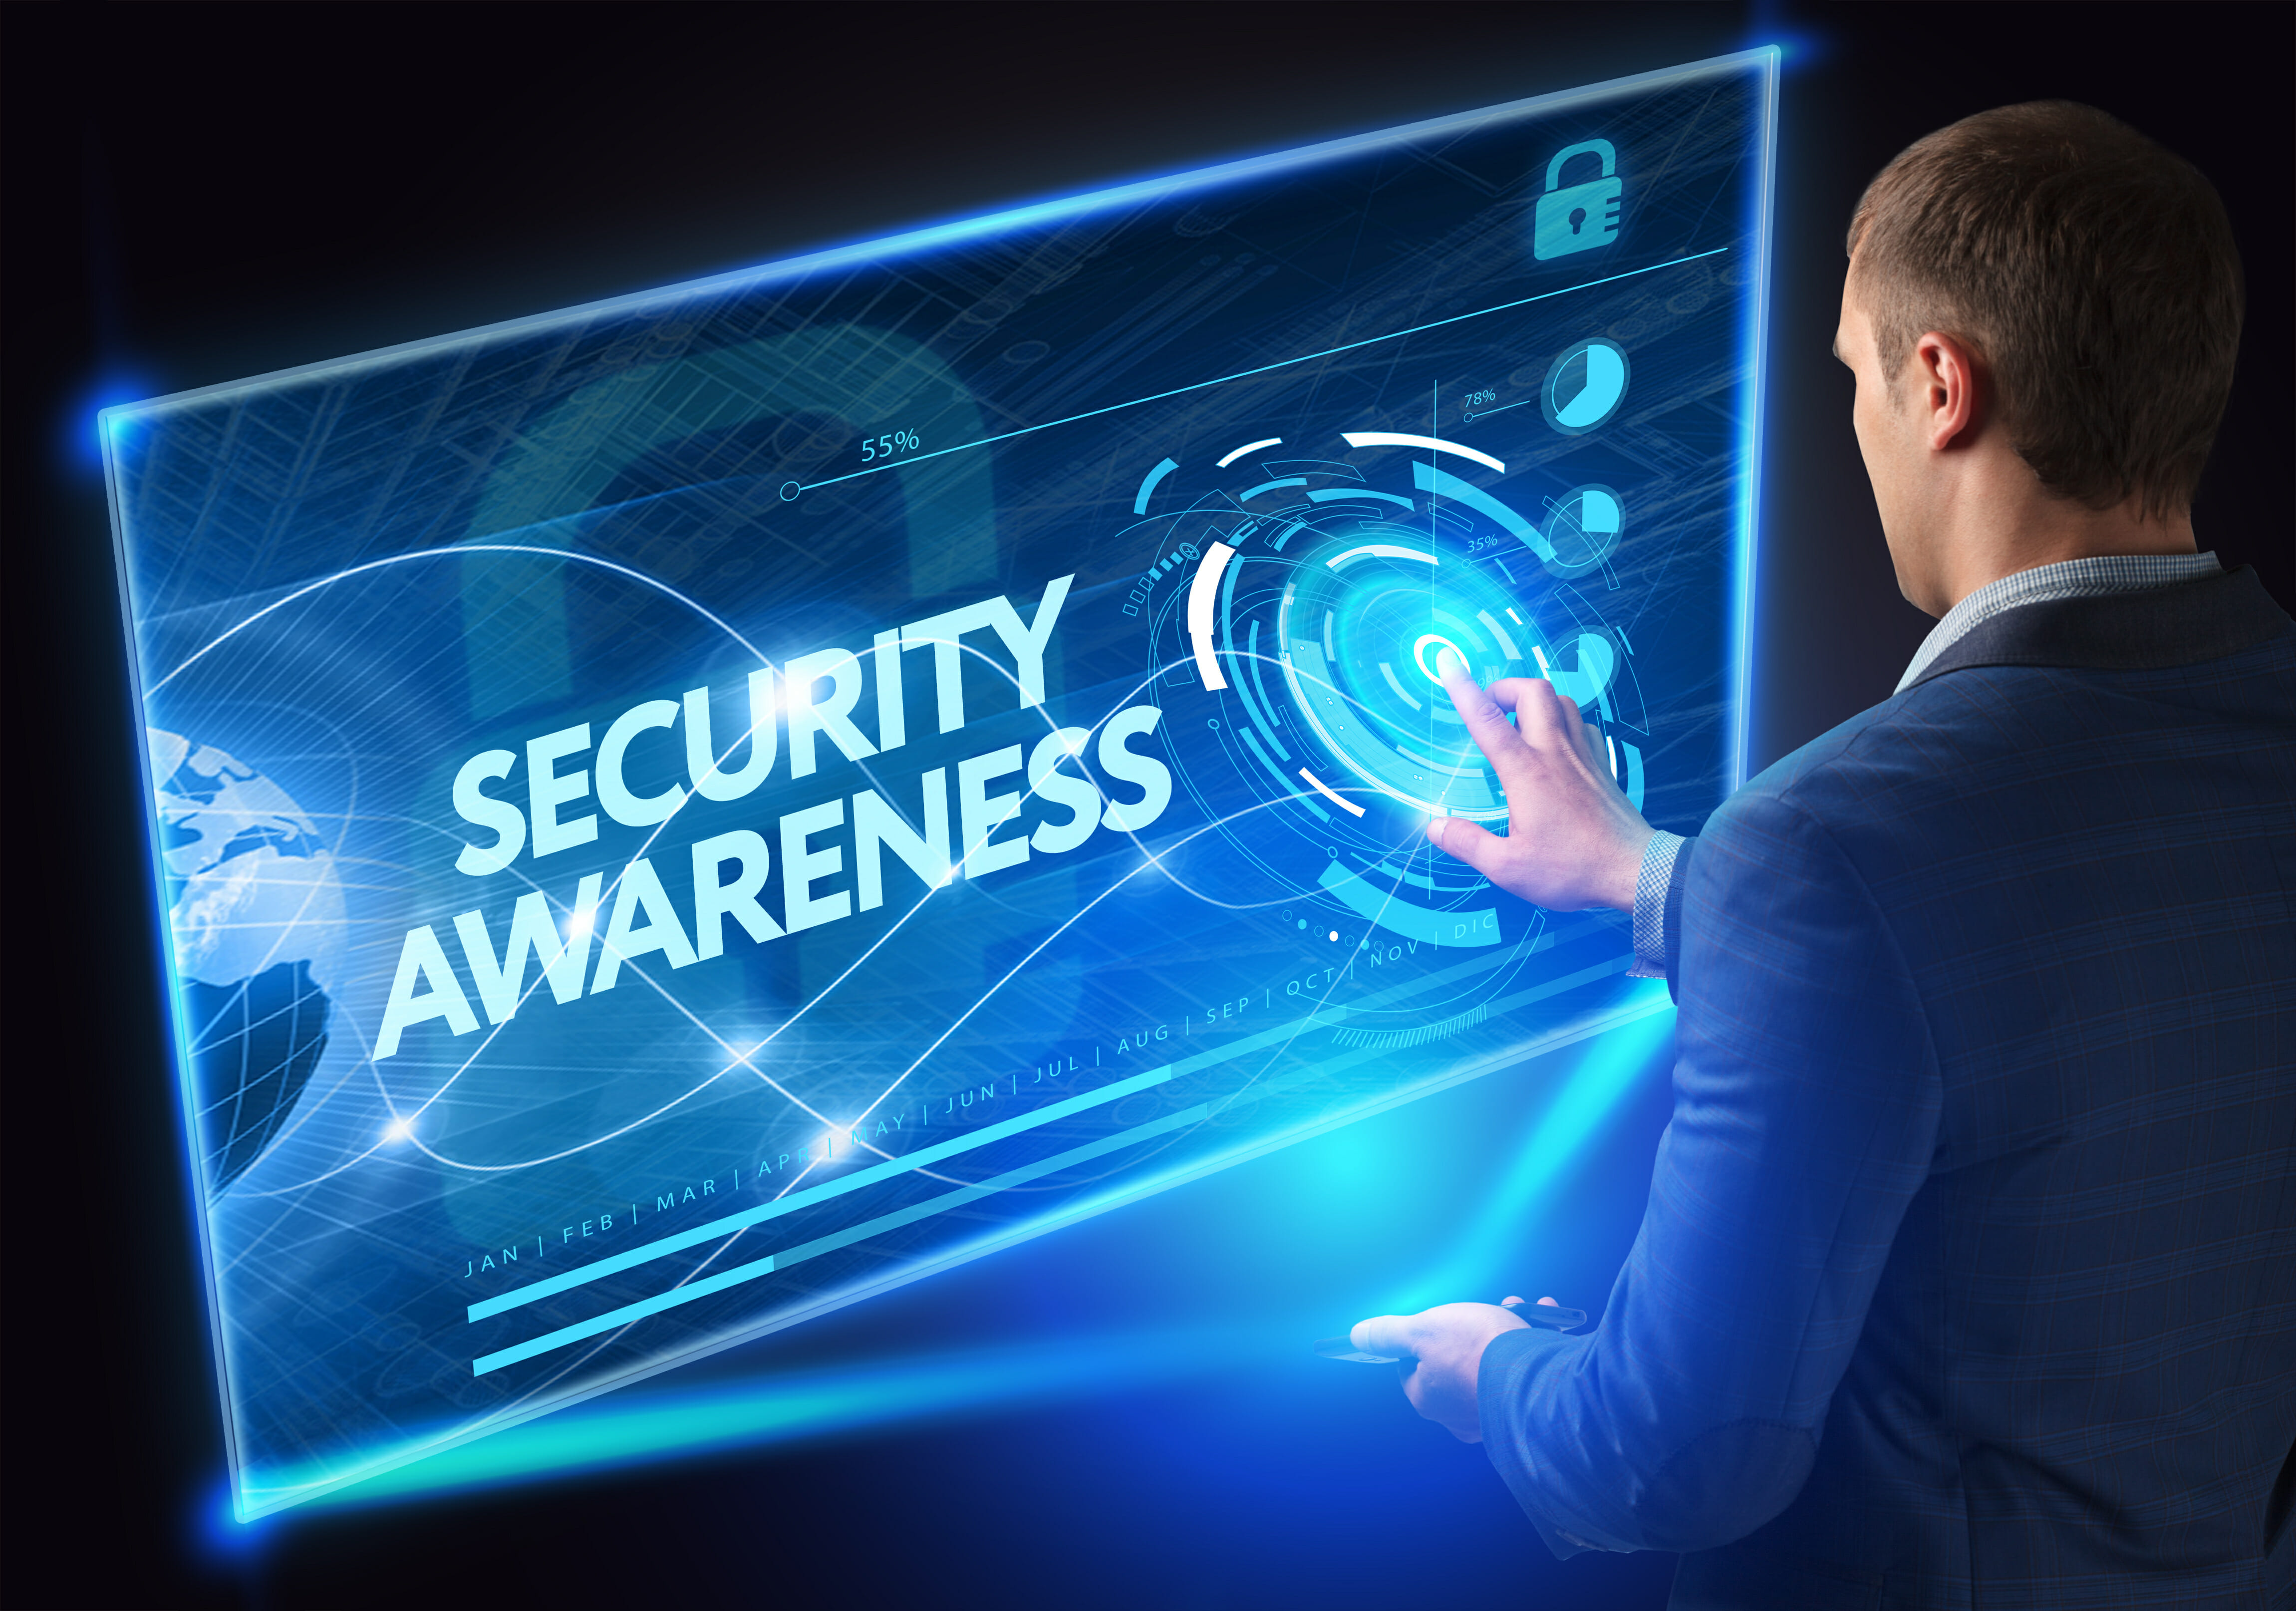 security awareness 00 Business continuity planning: A must have, not a luxury